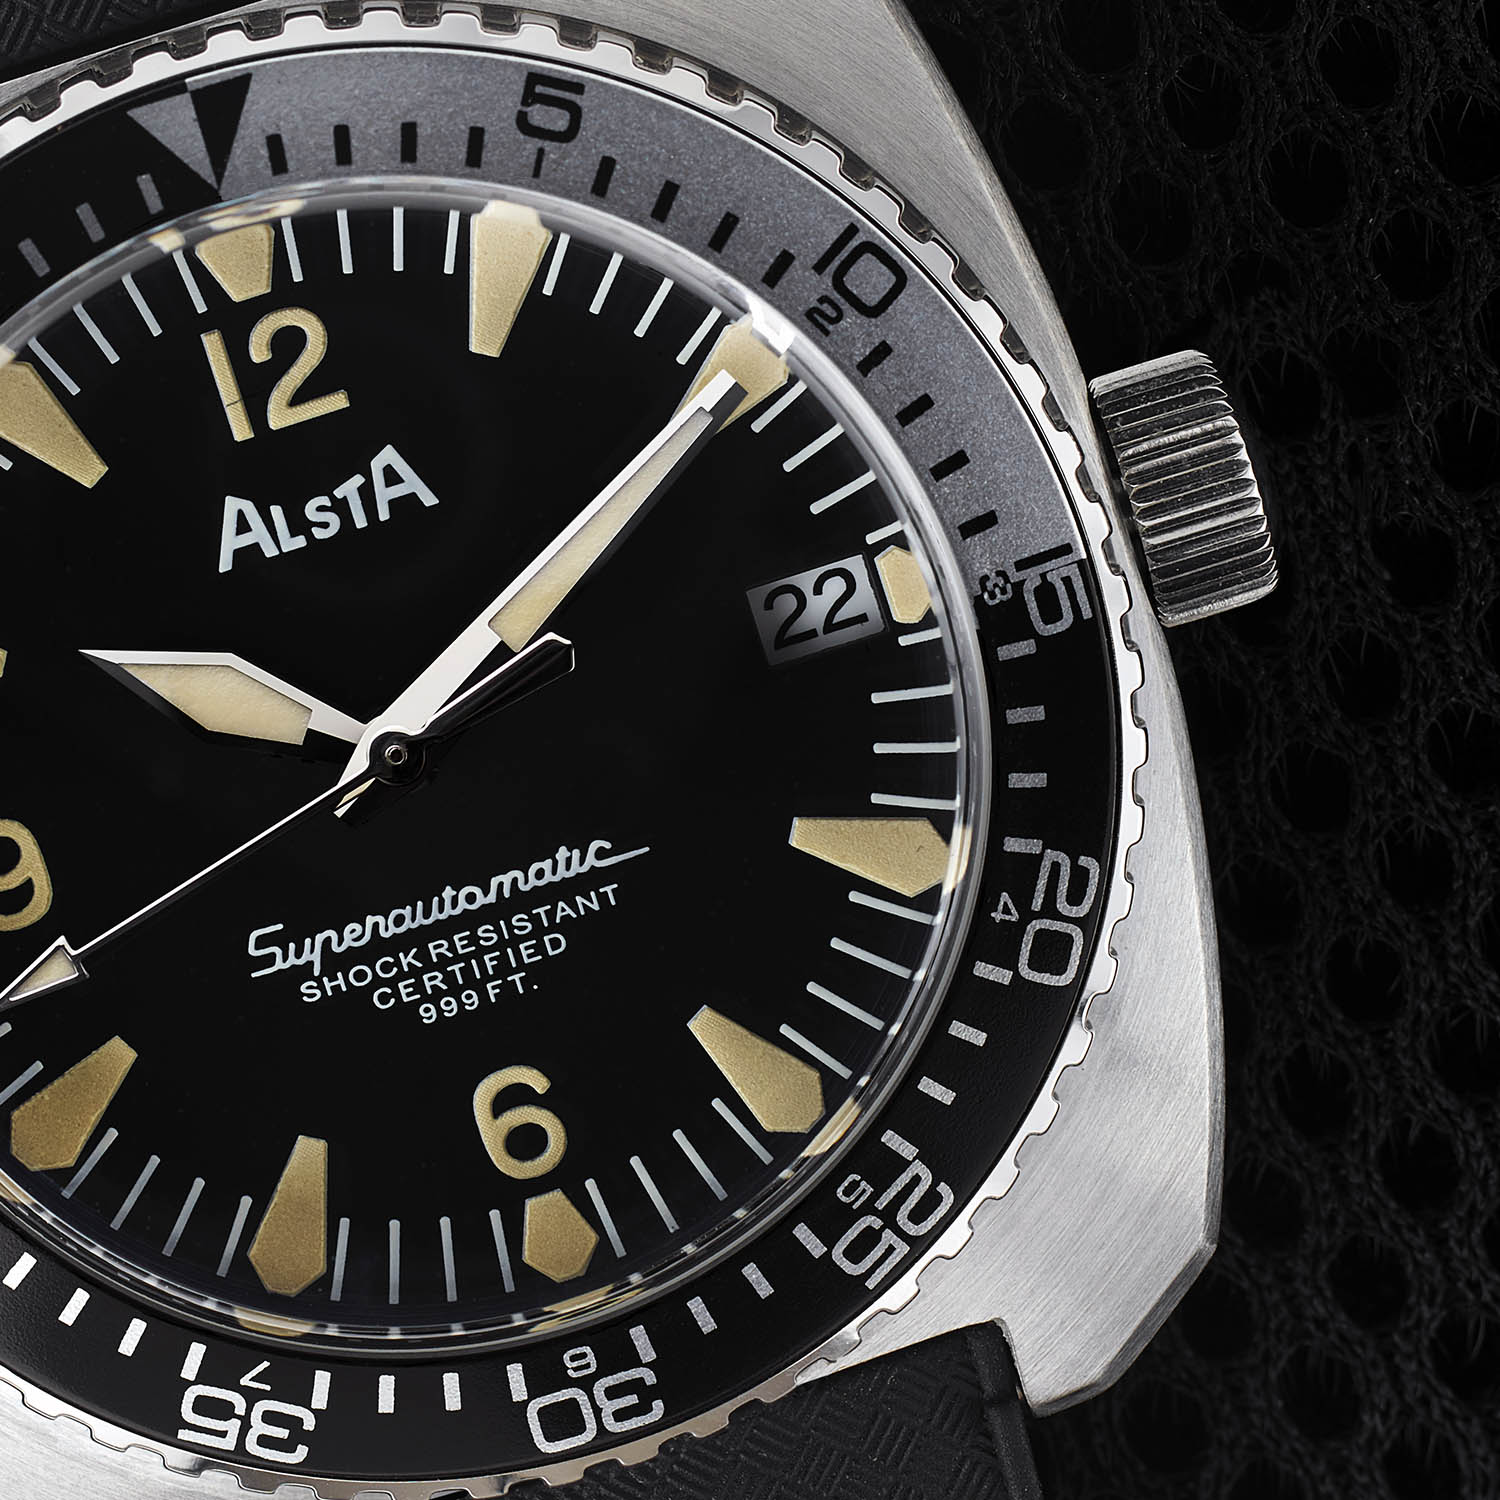 Alsta Nautoscaph Superautomatic 1970 Re-Edition - 1975 Movie Jaws re-issue